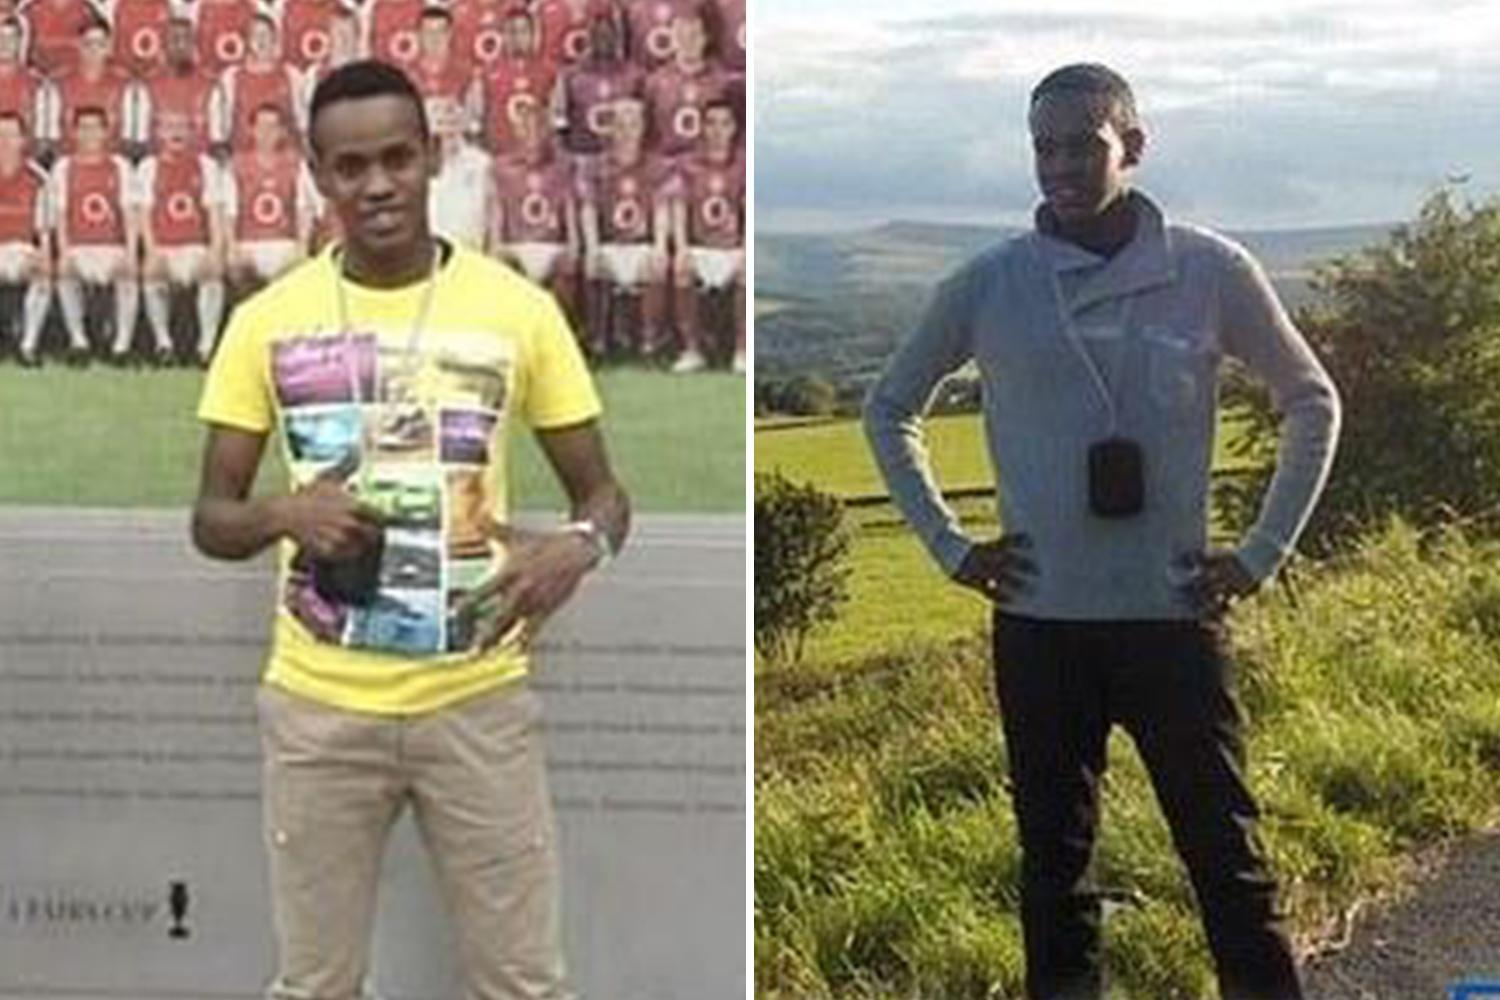 Brit, 26, arrested in UAE for wearing Qatar footie shirt is 'forced to sign confession that he attacked cop'